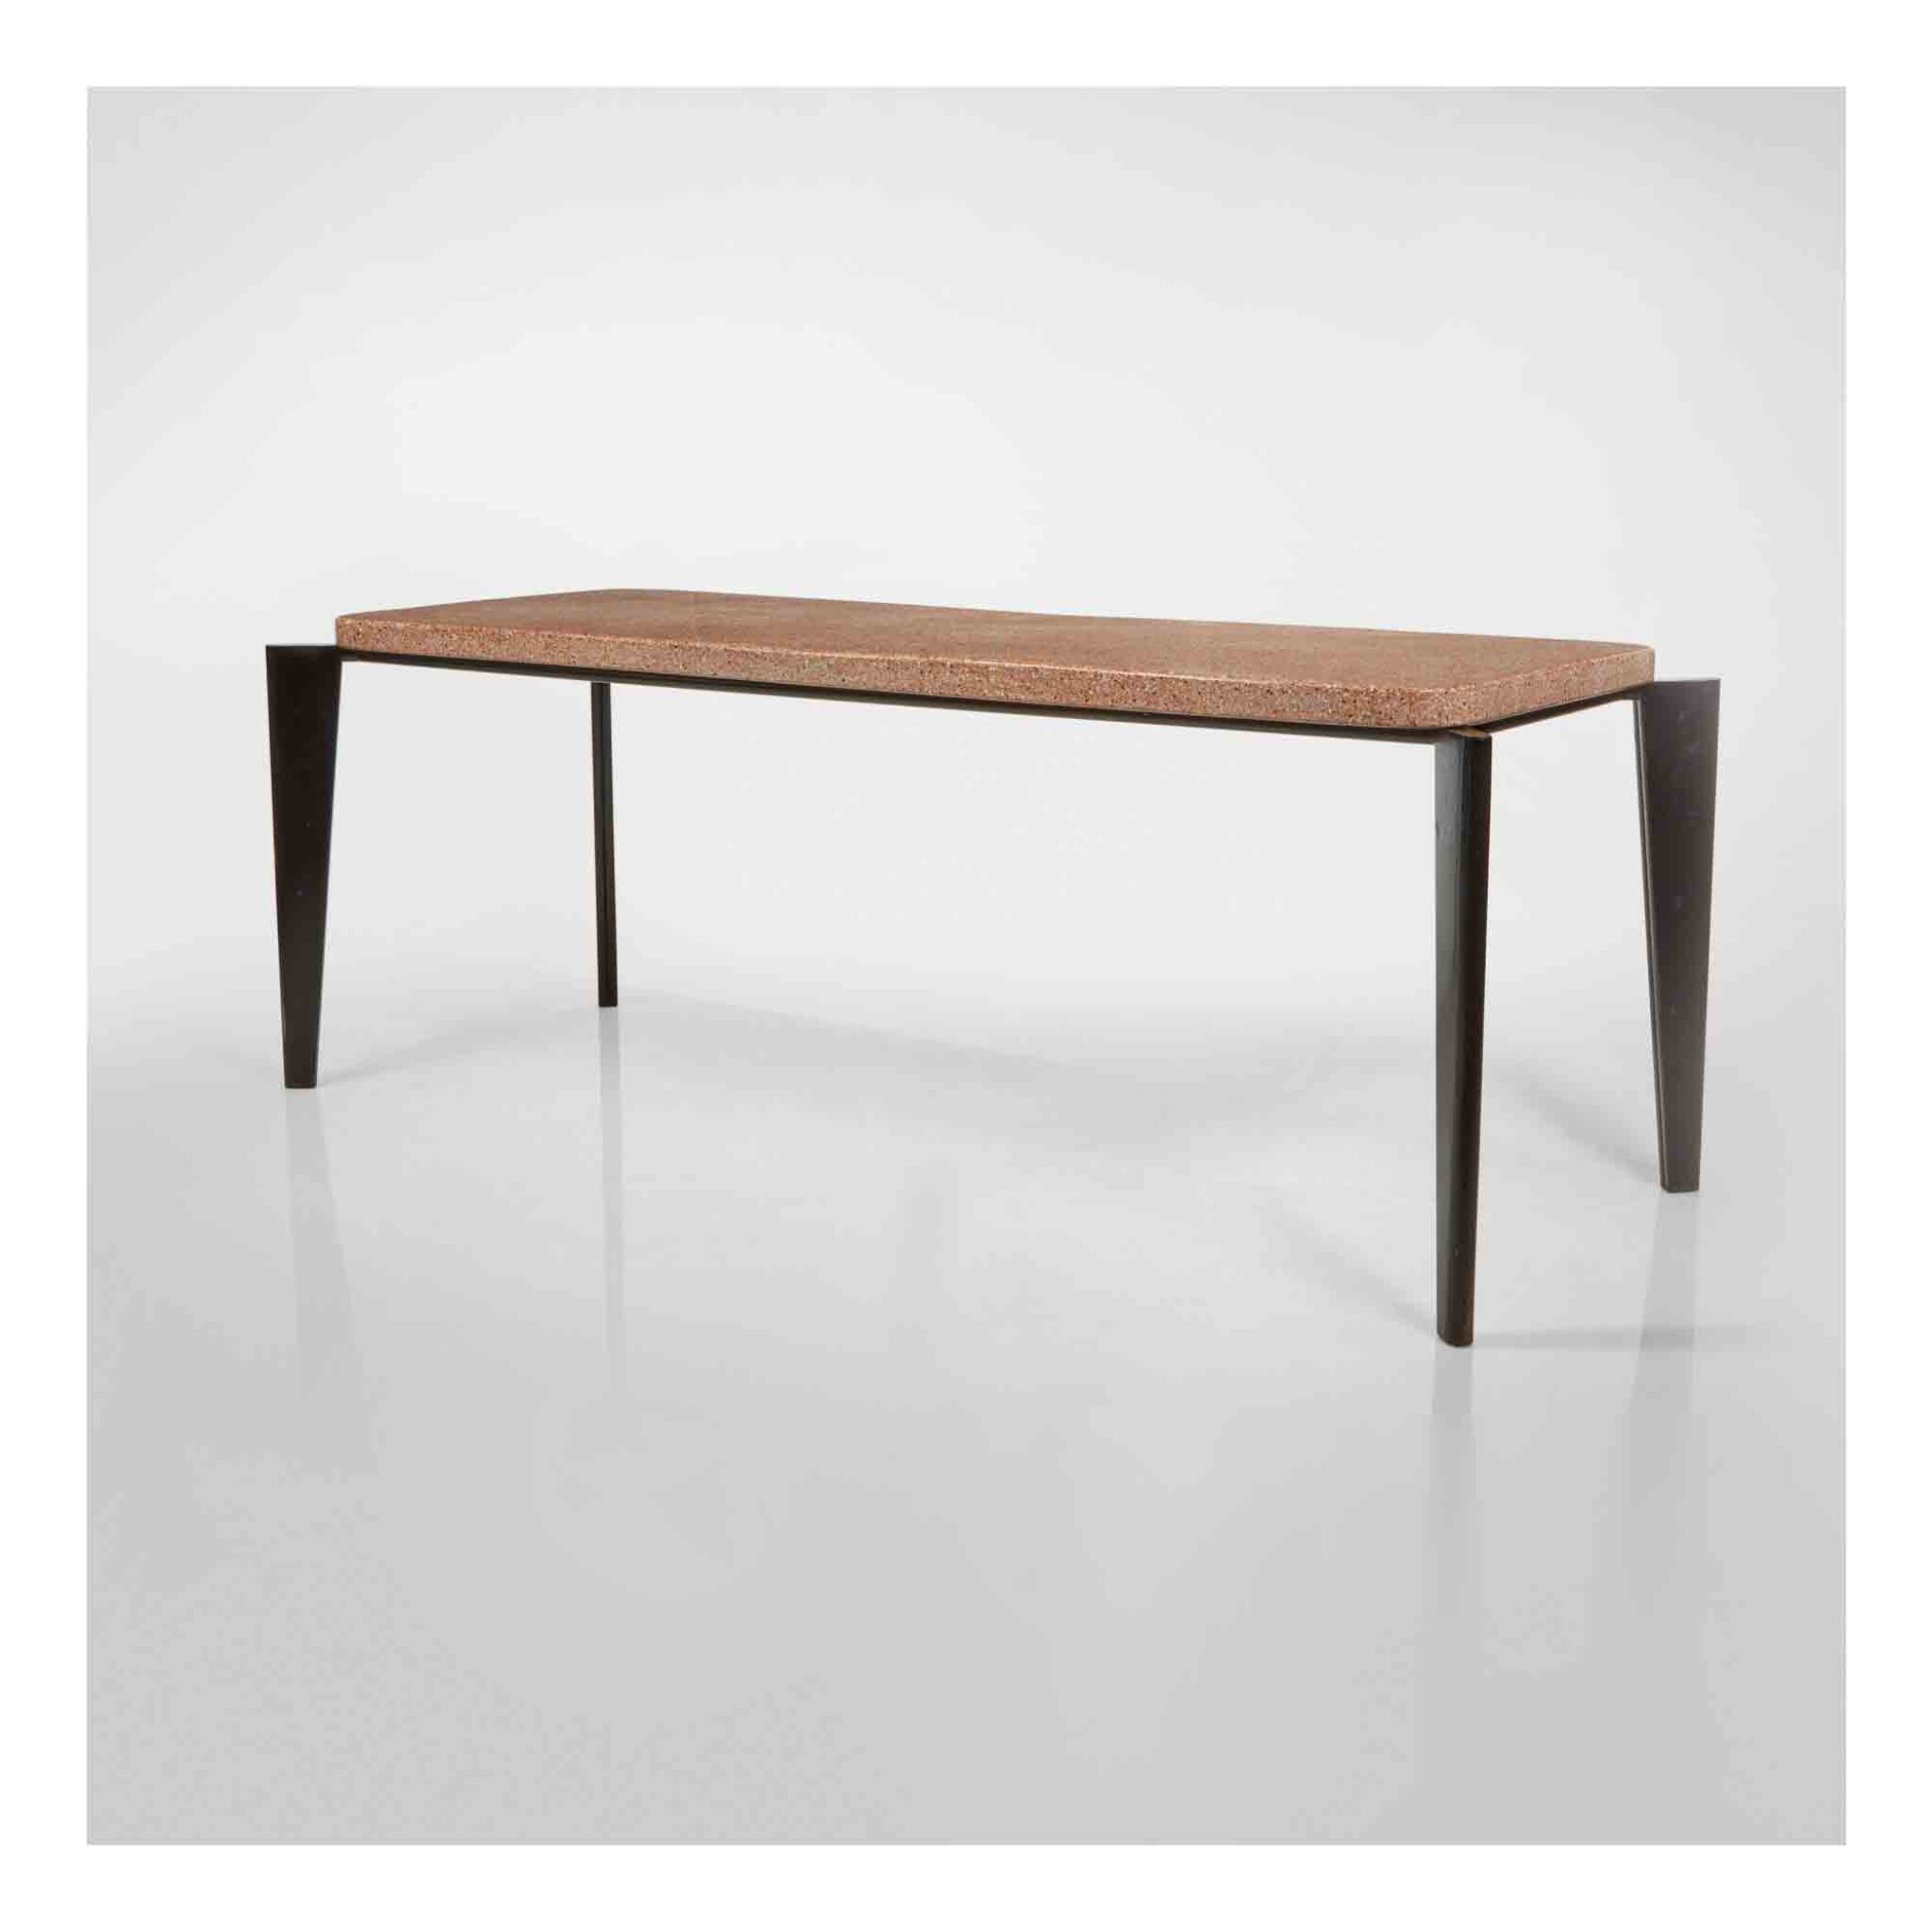 """View 1 of Lot 363. """"Flavigny"""" Dining Table, Model No. 504."""